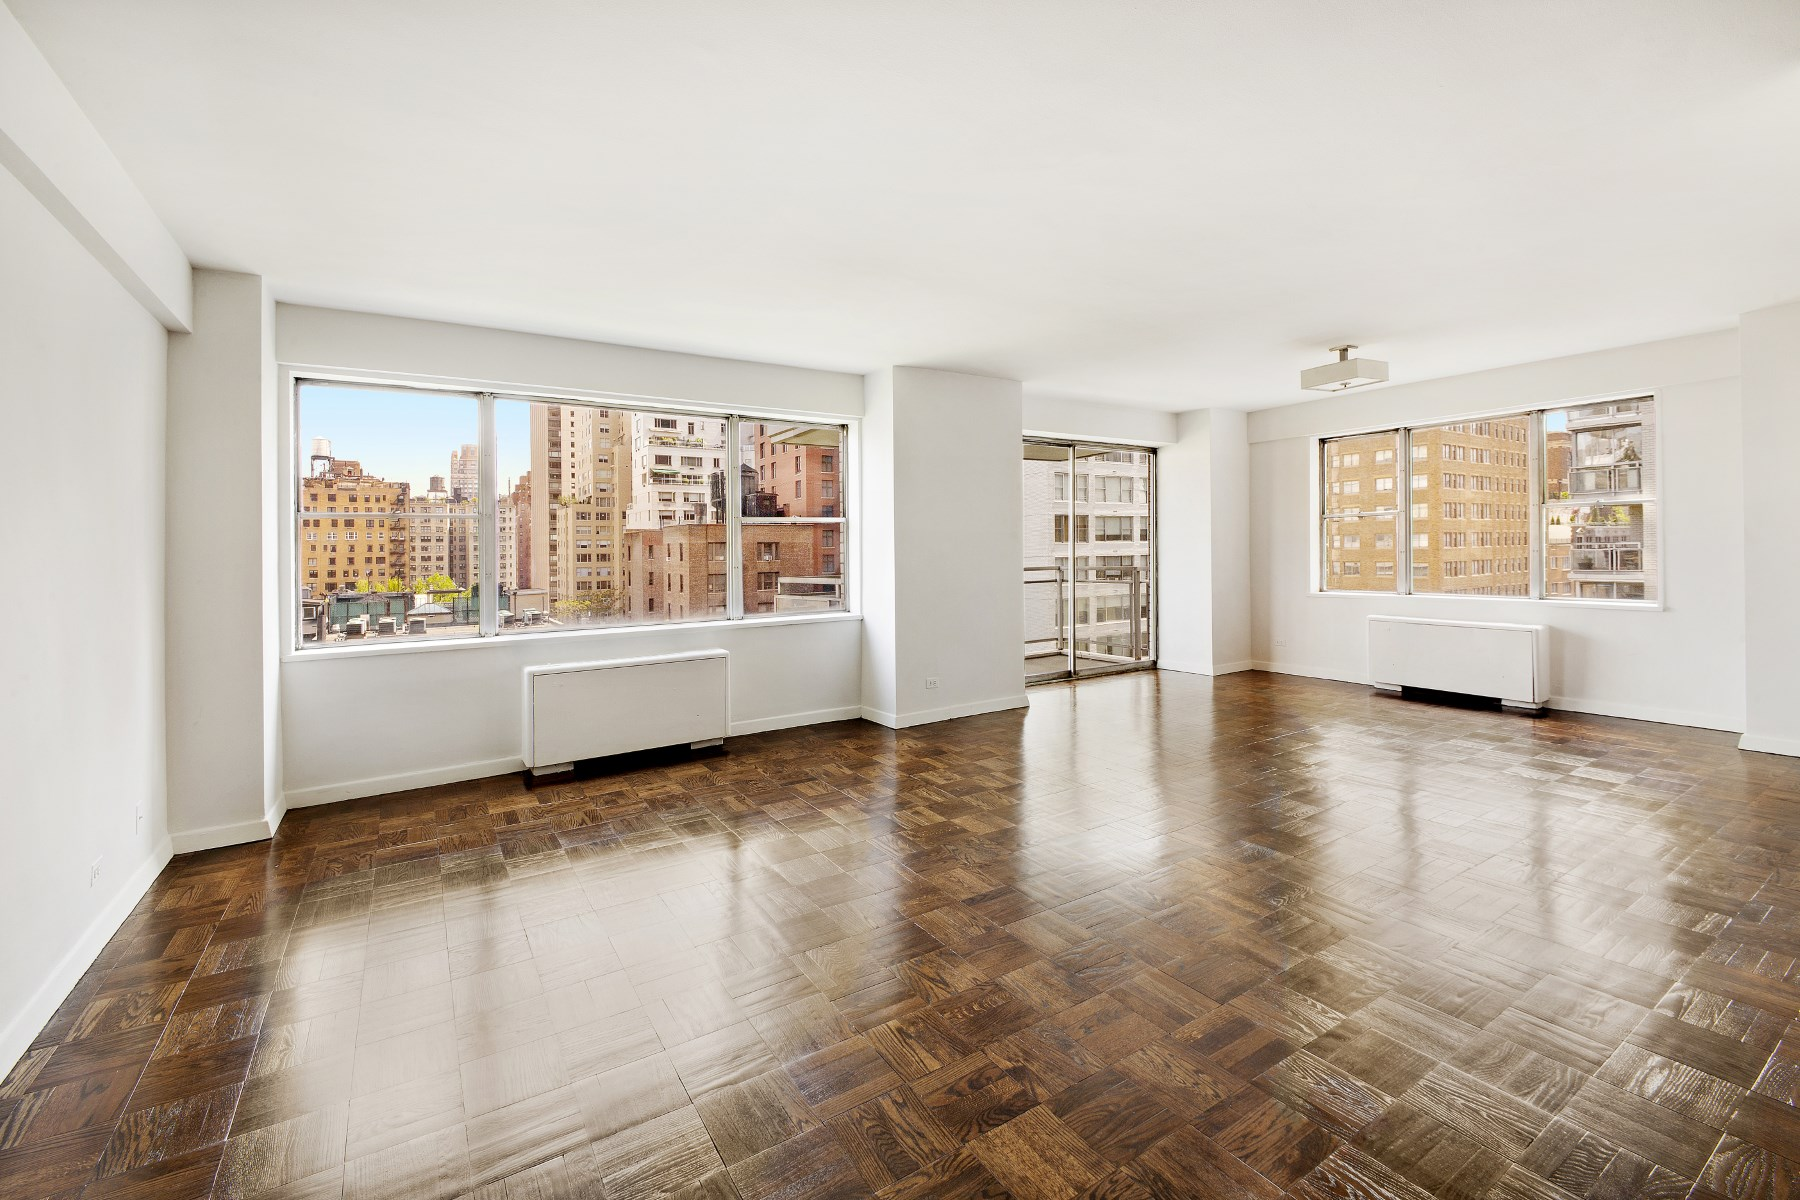 Co-op for Sale at Imperial House 150 East 69th Street Apt 9j Upper East Side, New York, New York 10021 United States